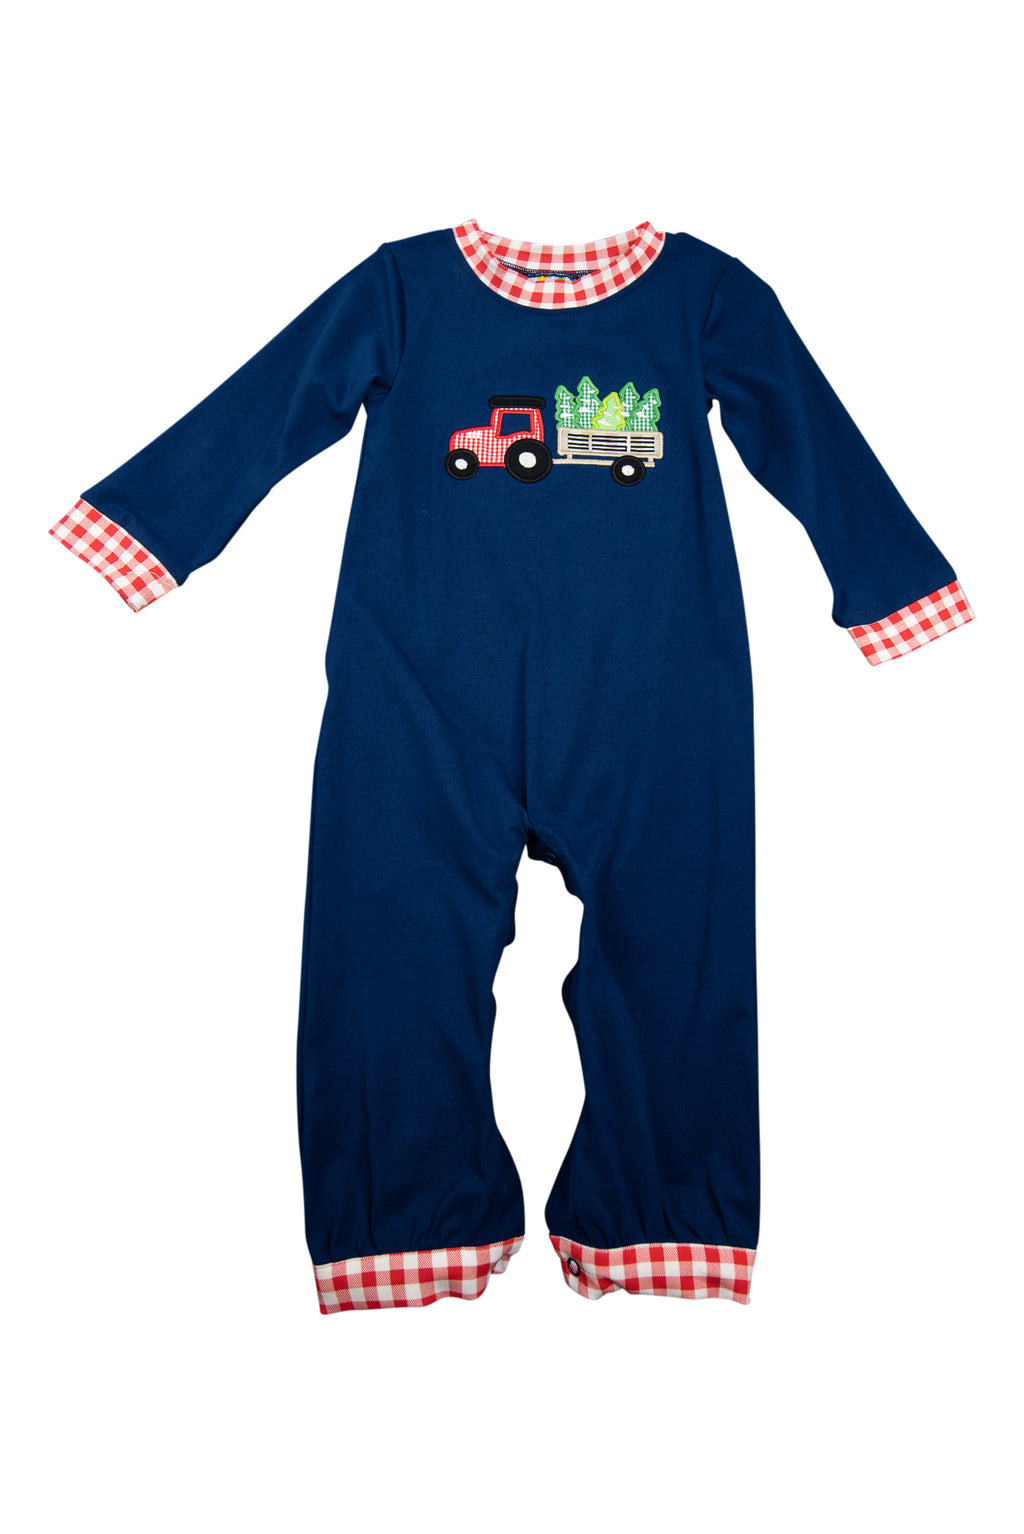 Boys Tree Farm Romper